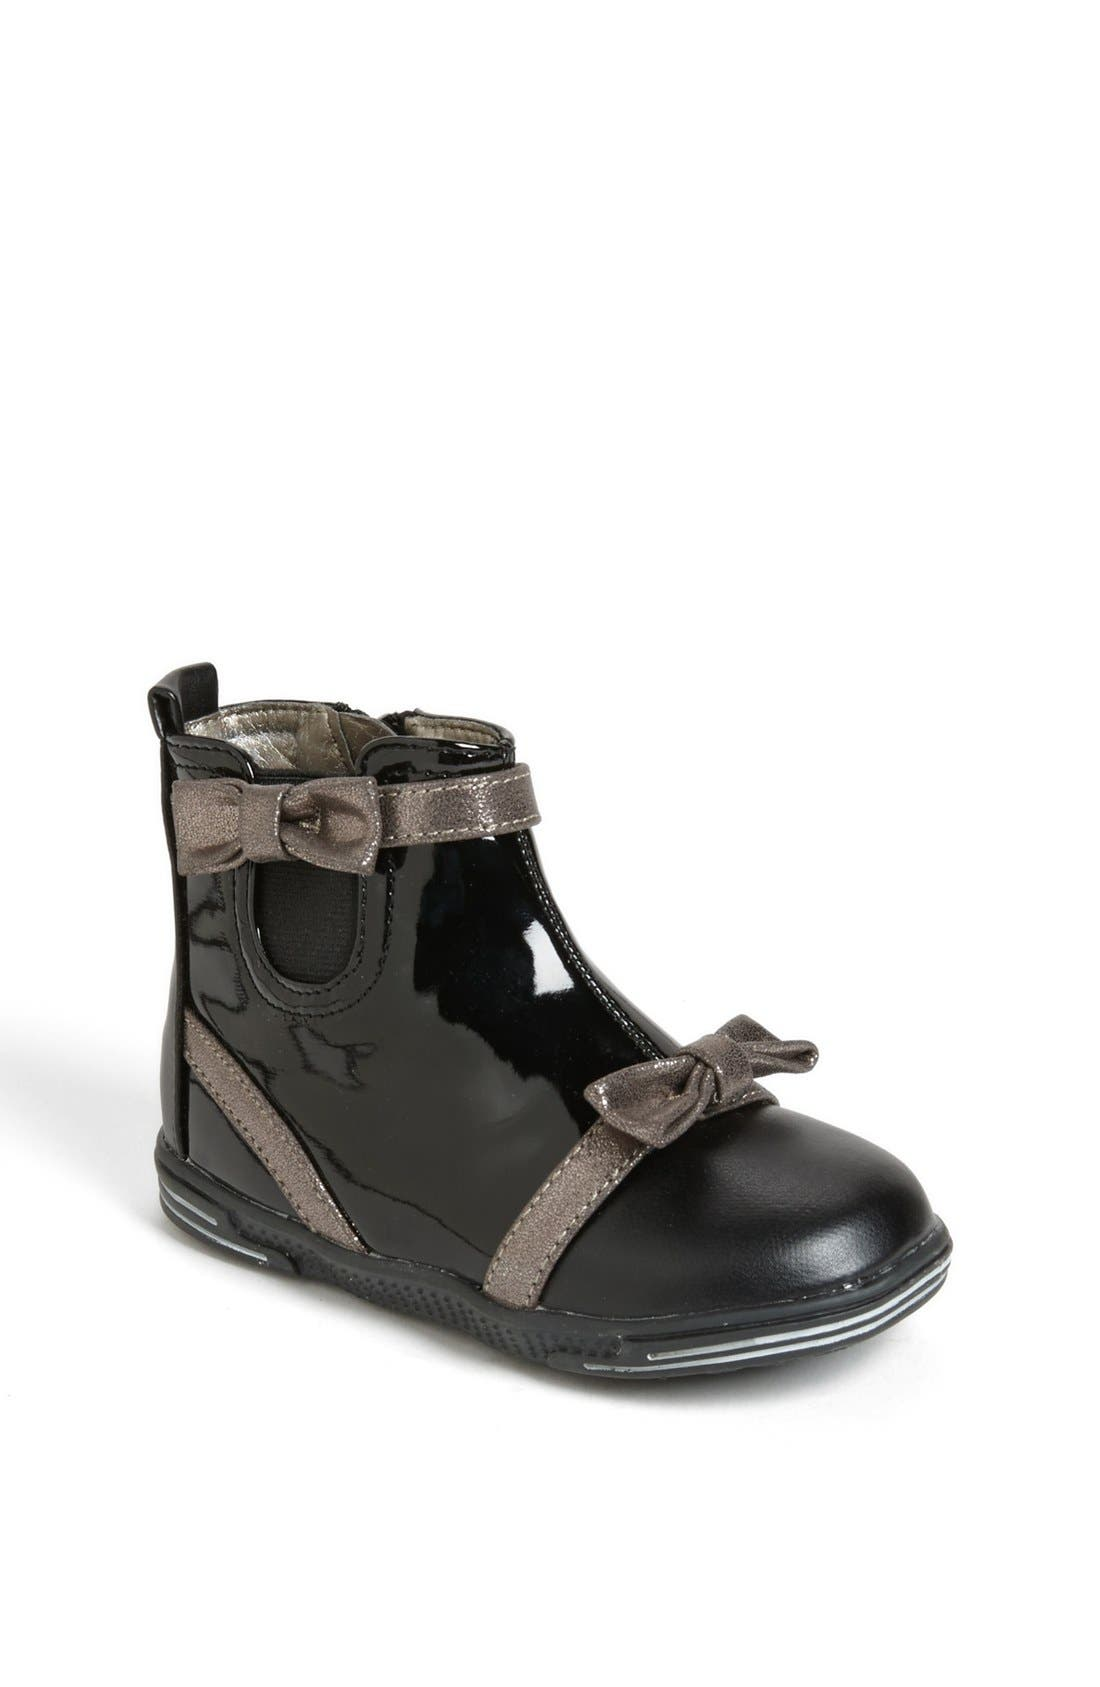 Alternate Image 1 Selected - kensie girl Bow Boot (Walker & Toddler)